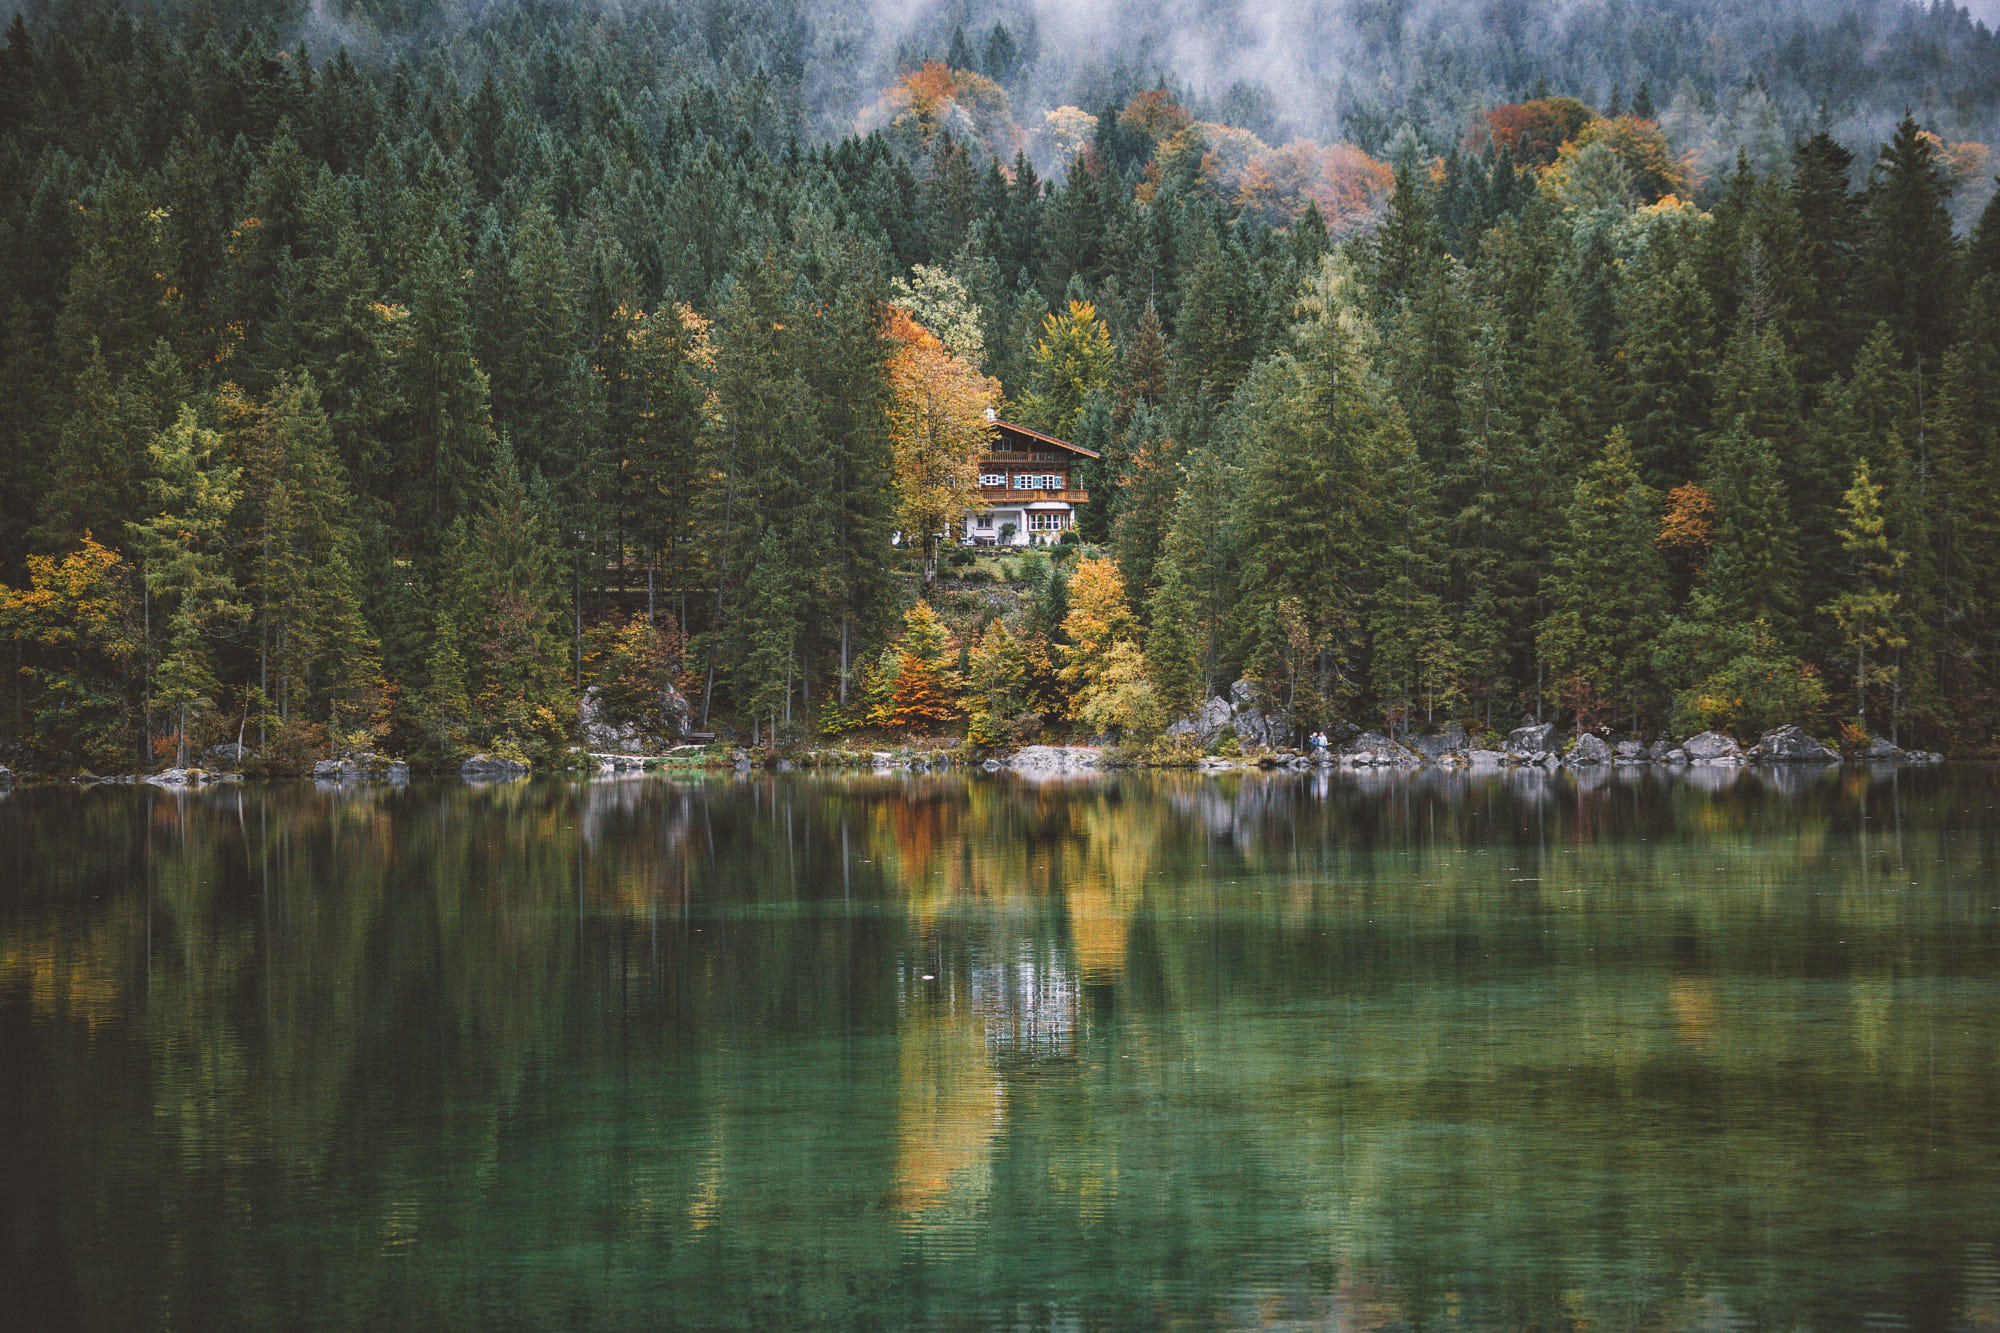 Autumn arrived at lake Hintersee.